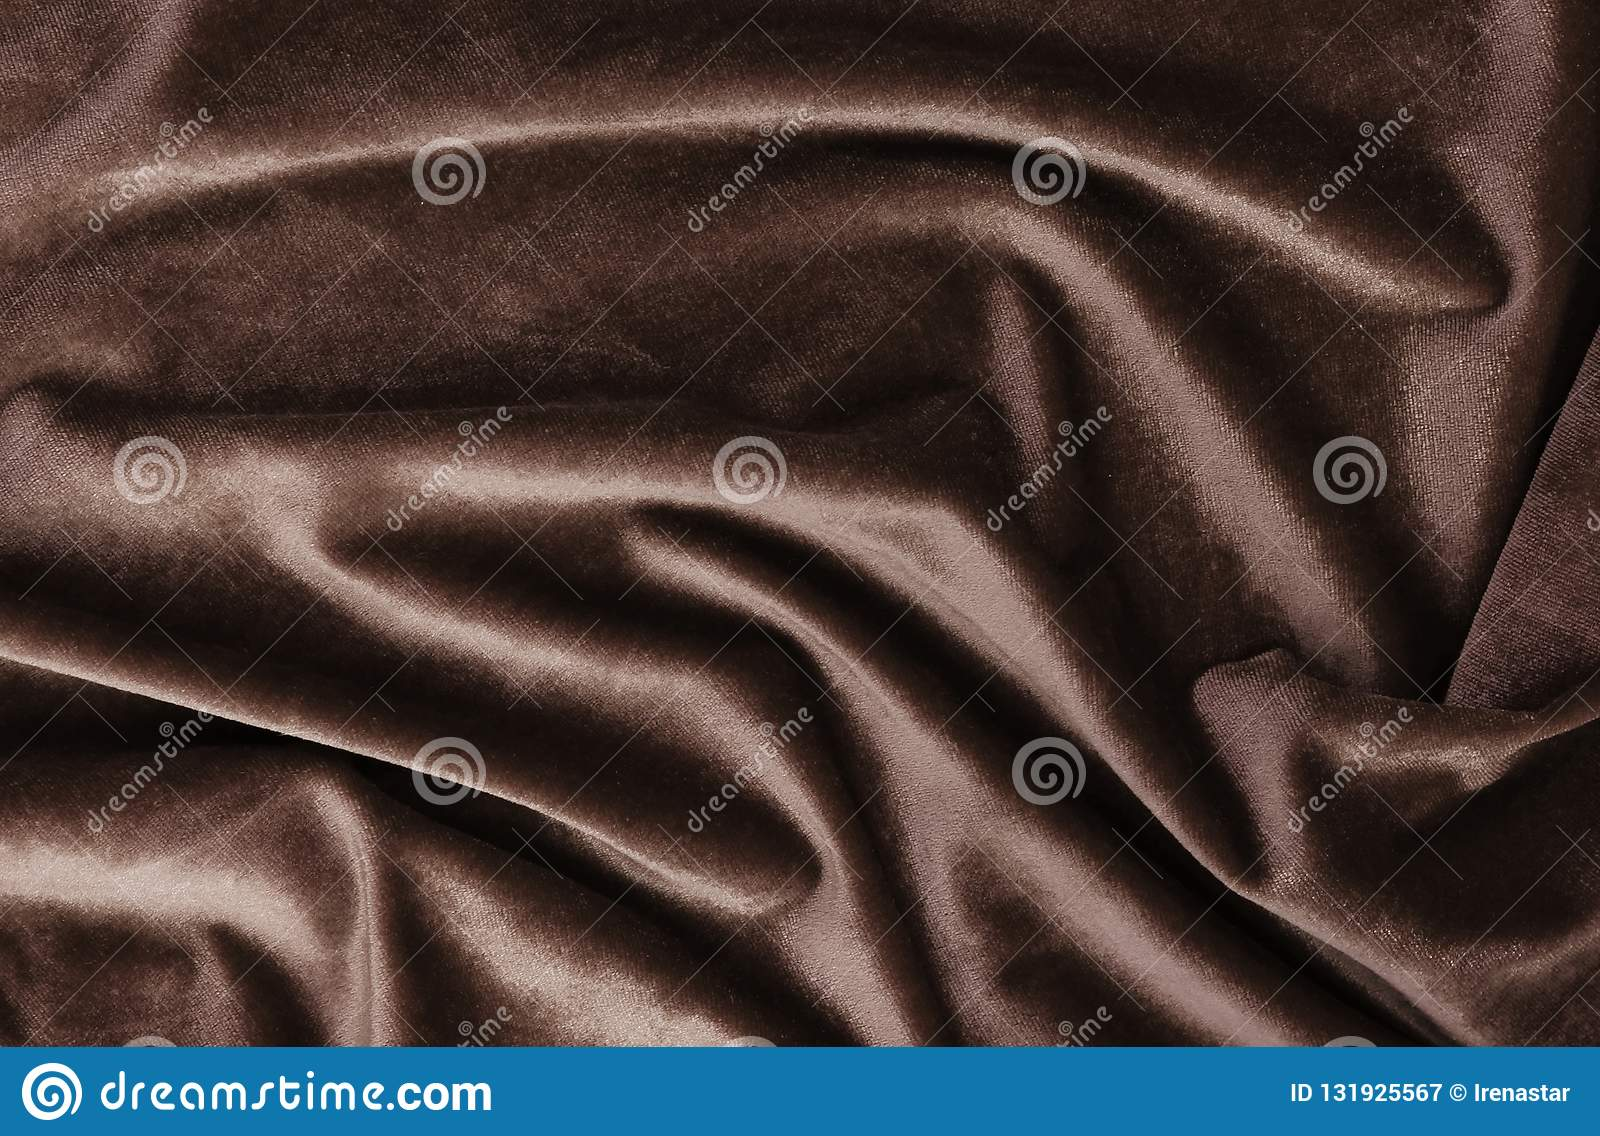 Velvet background, texture, brown color, expensive luxury, fabric,